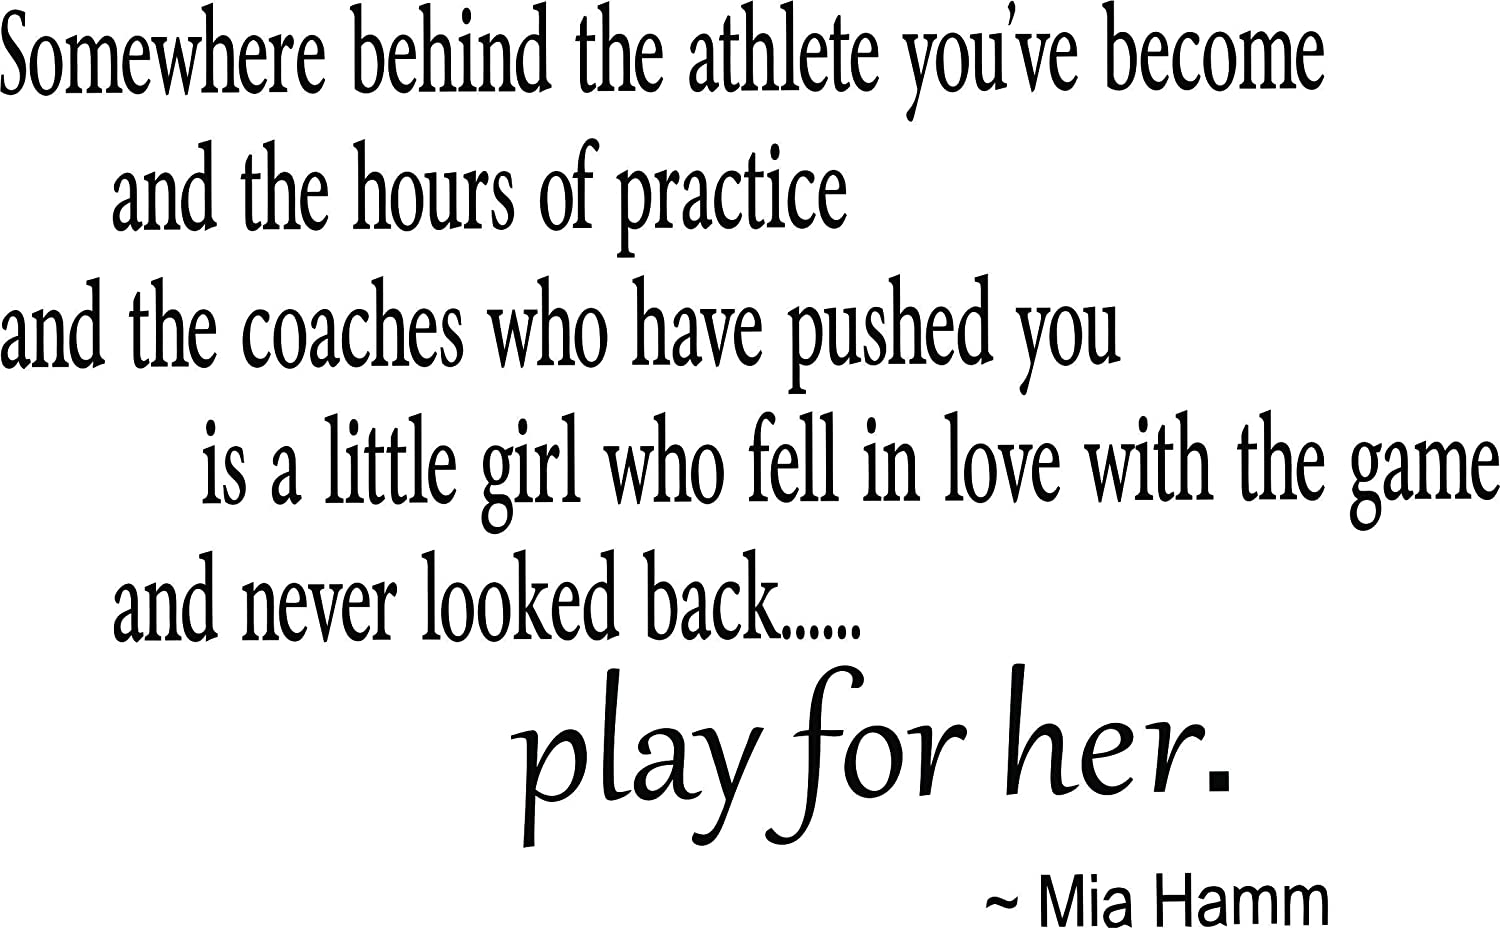 Best Selling Cling Transfer : Play for her Gymnastics Basketball Soccer Track Baseball Softball Volleyball Tennis Wall Decal Sticker Size : 20 Inches X 25 Inches - 22 Colors Available